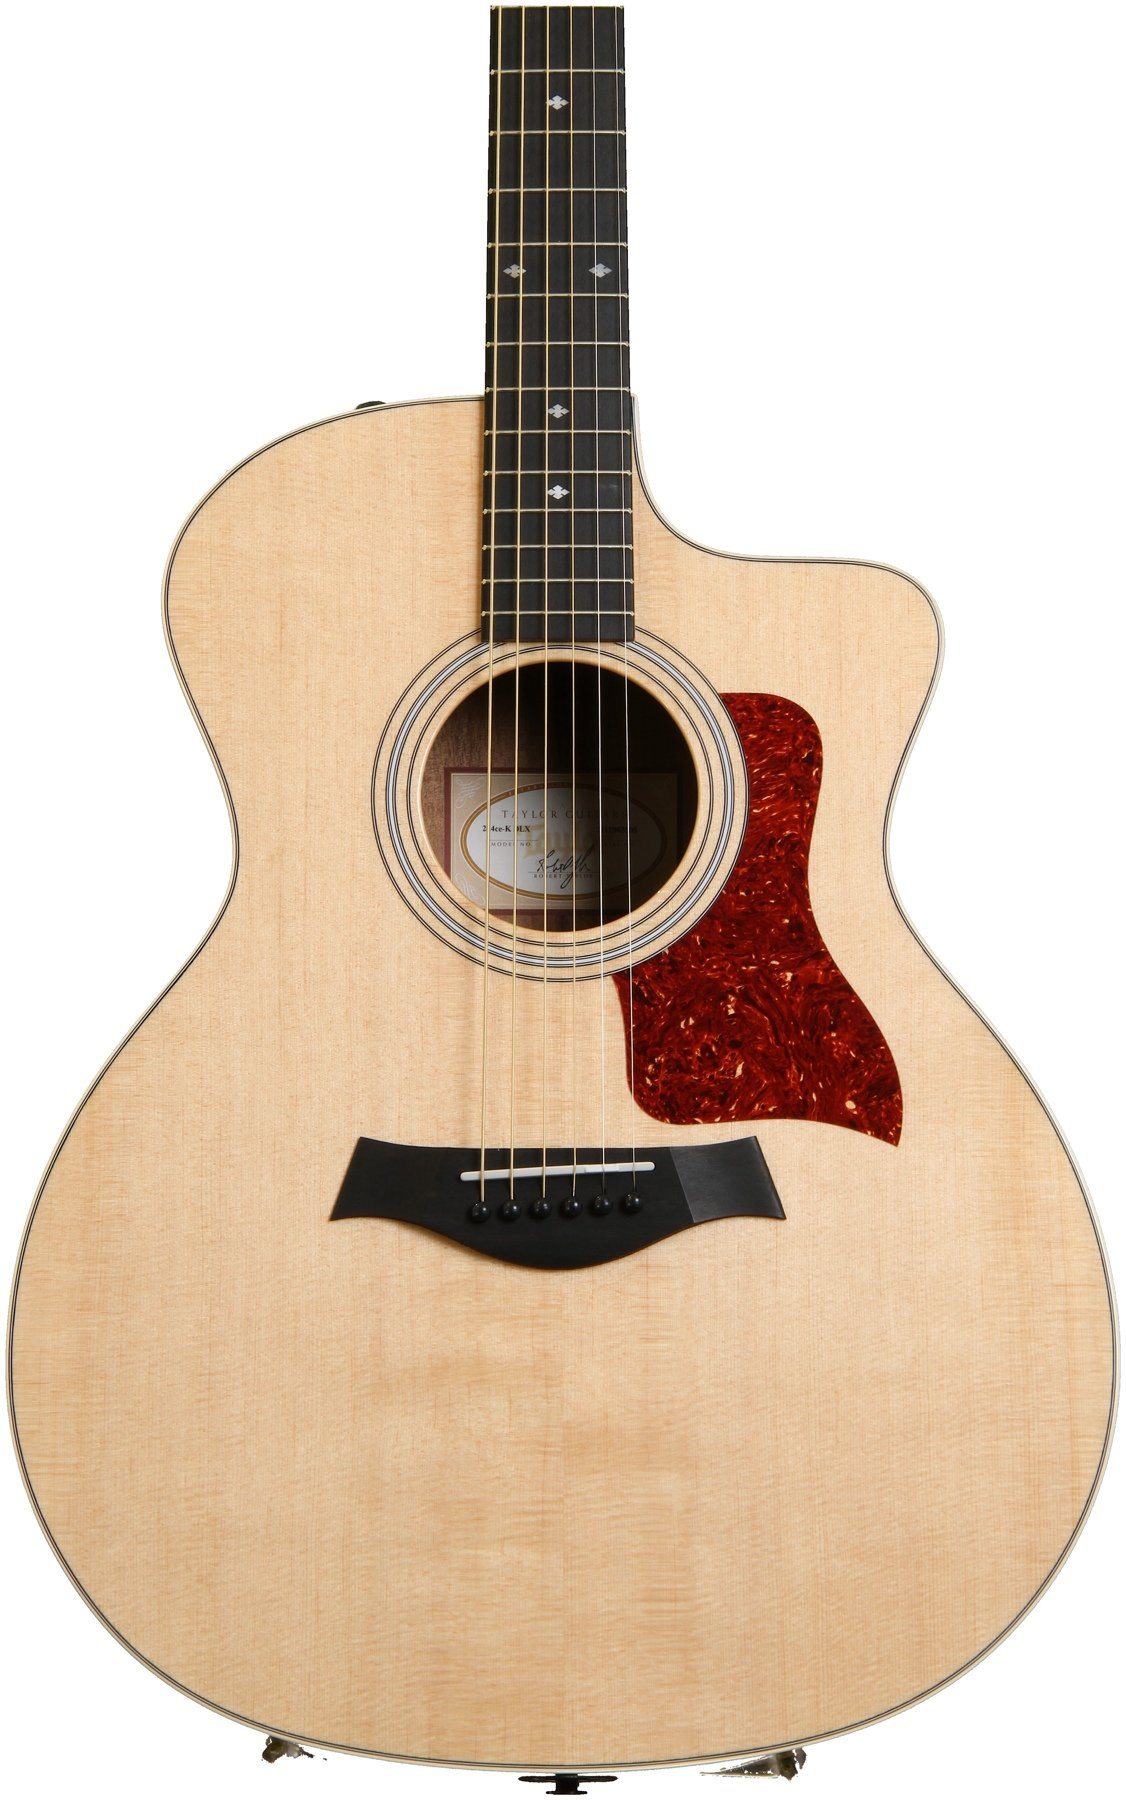 a5dd4b80c0 Taylor 214ce Deluxe - Natural w/ Layered Koa Back & Sides | Sweetwater